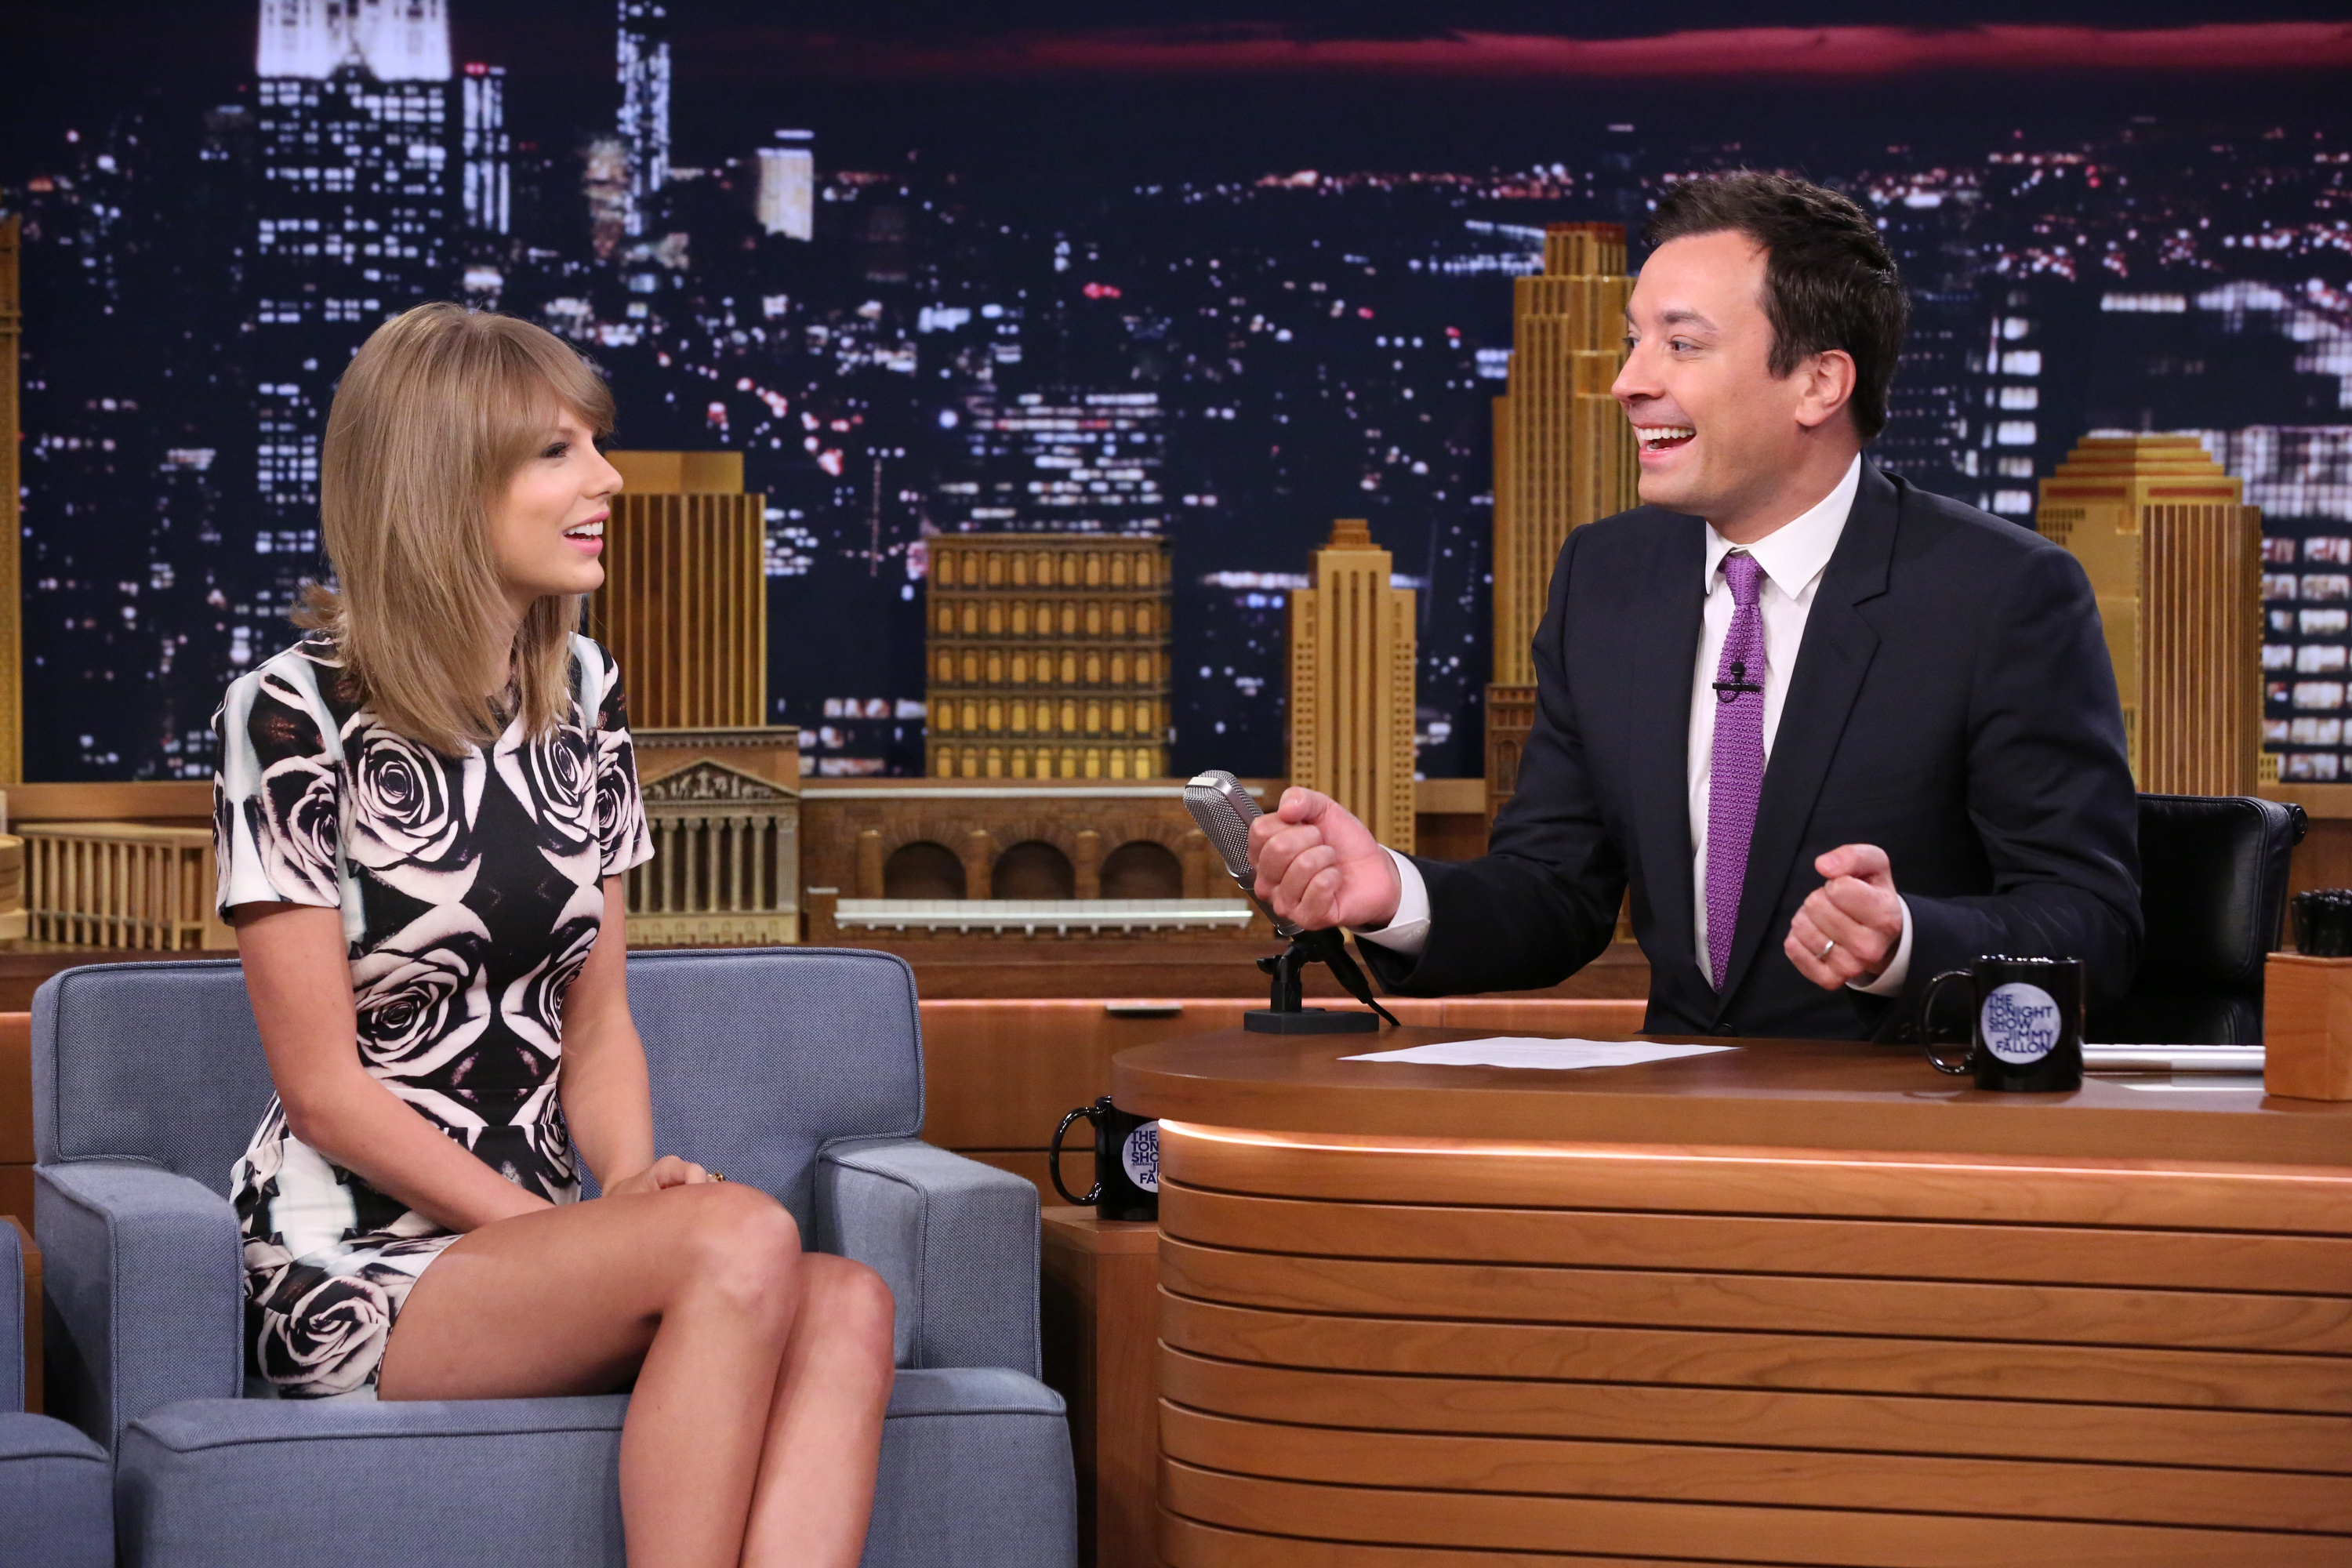 Taylor Swift Nerds Out With Jimmy Fallon Time